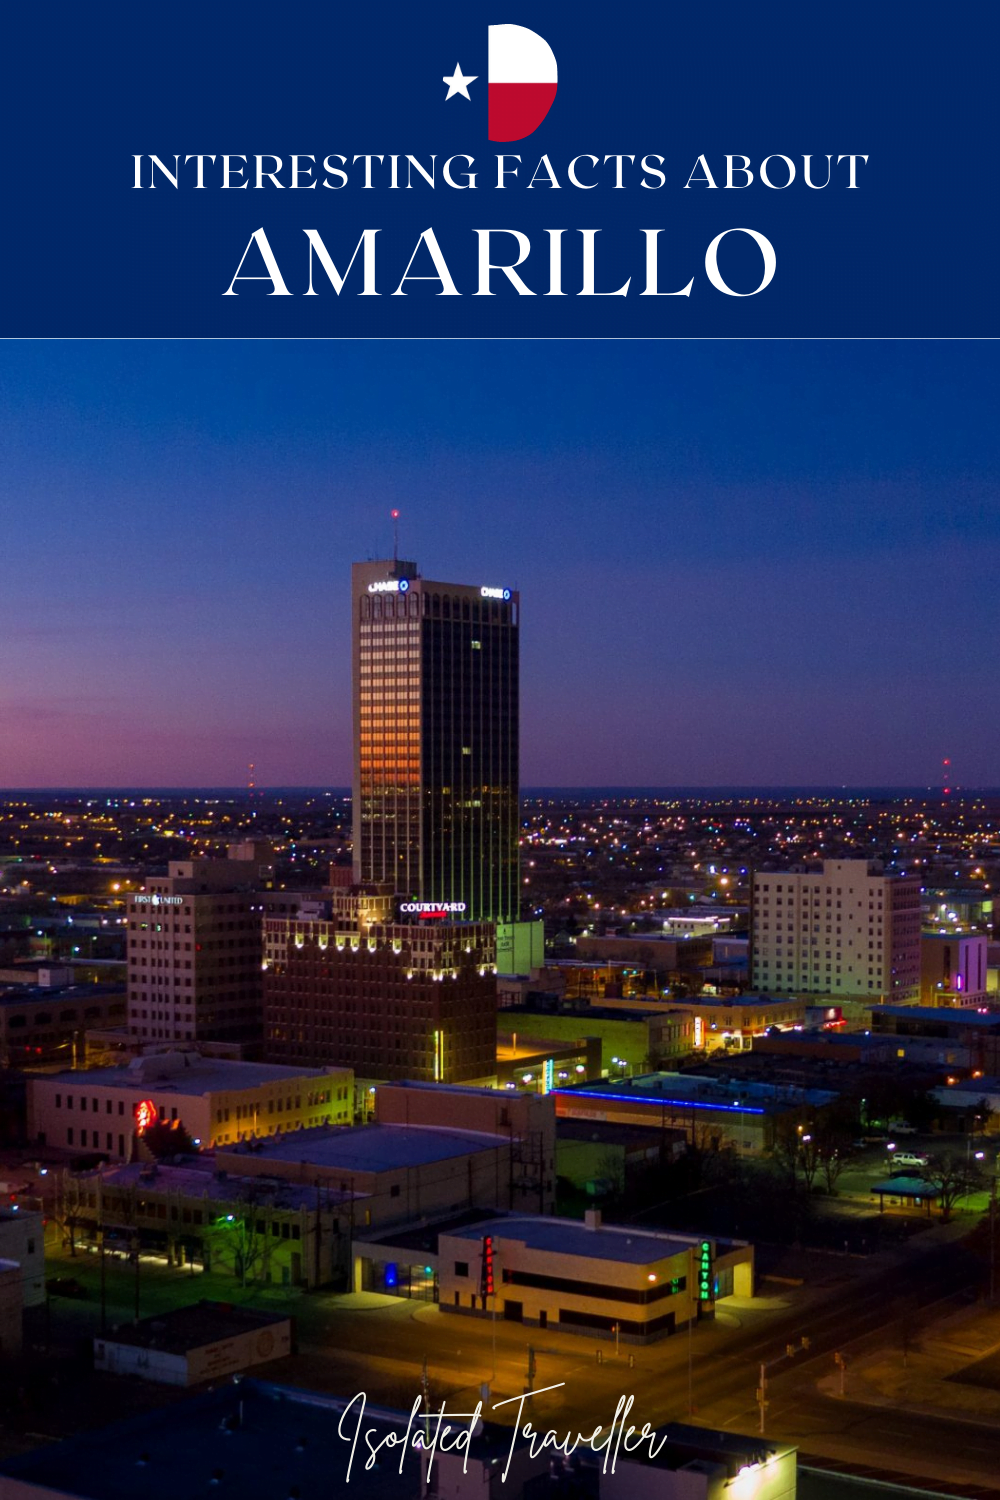 Facts About Amarillo